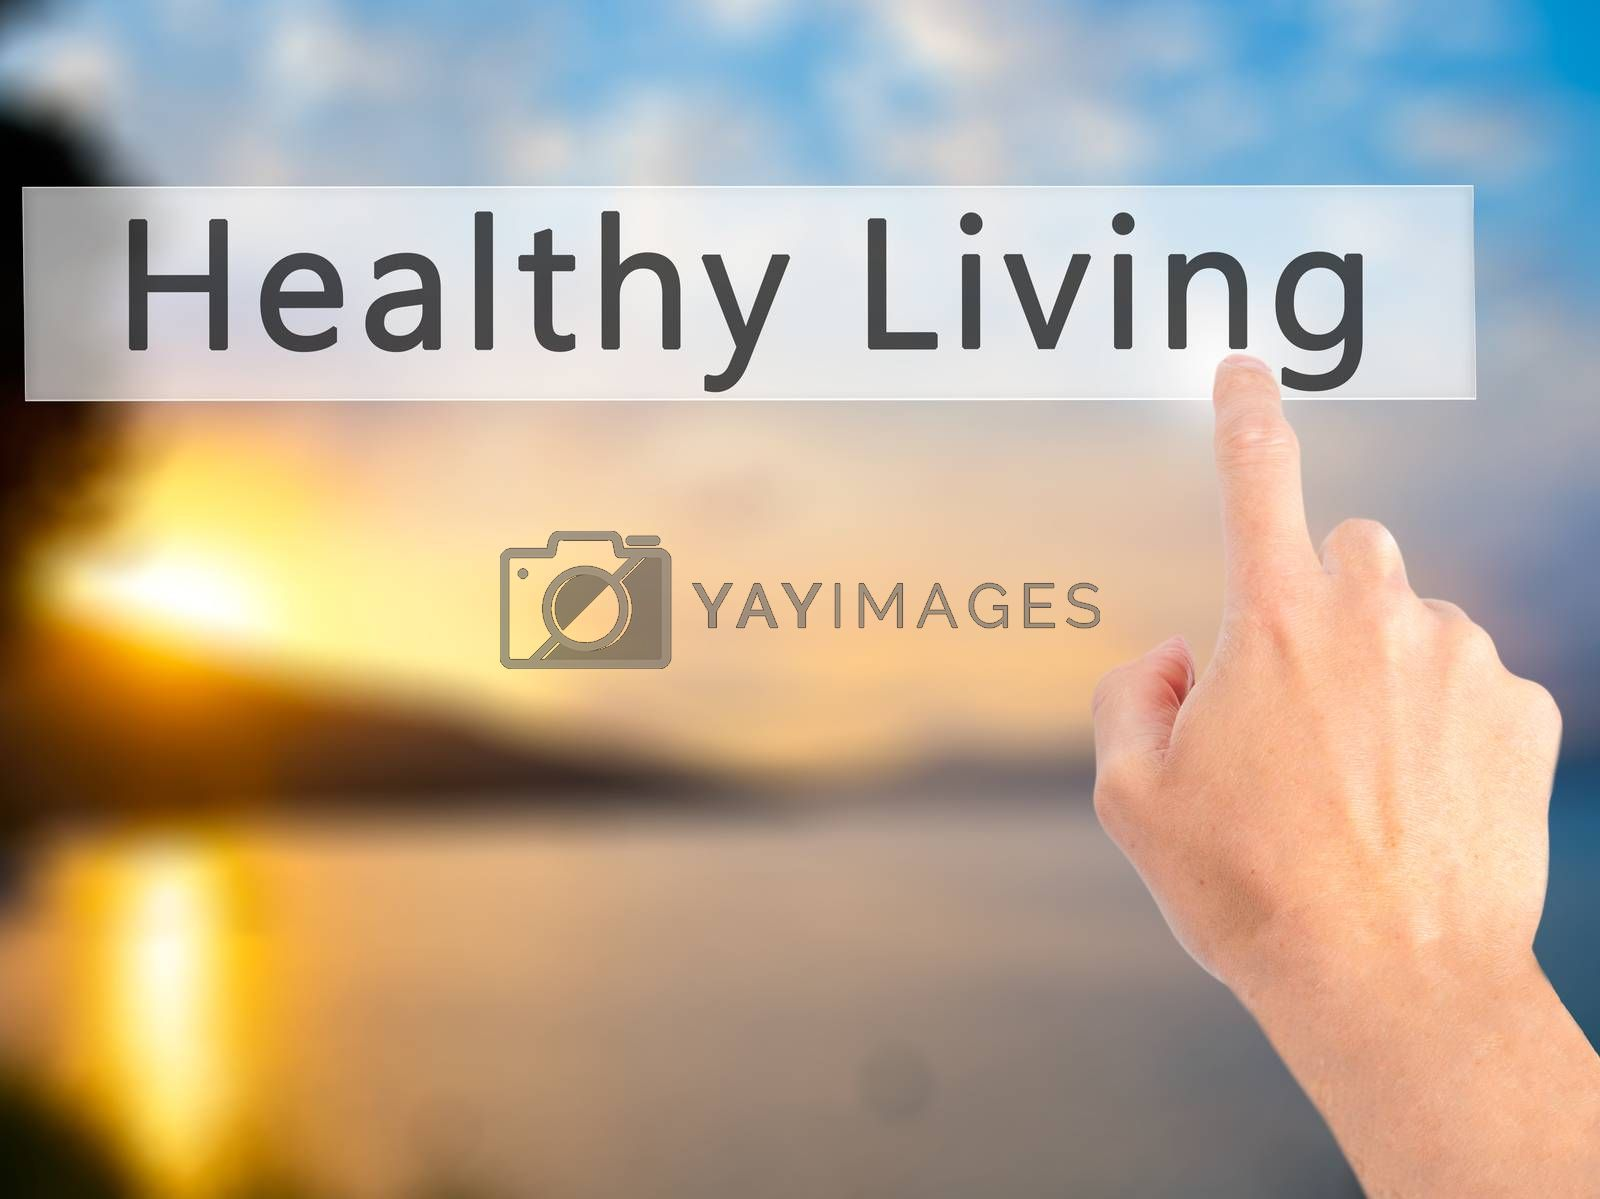 Healthy Living - Hand pressing a button on blurred background co by netsay.net